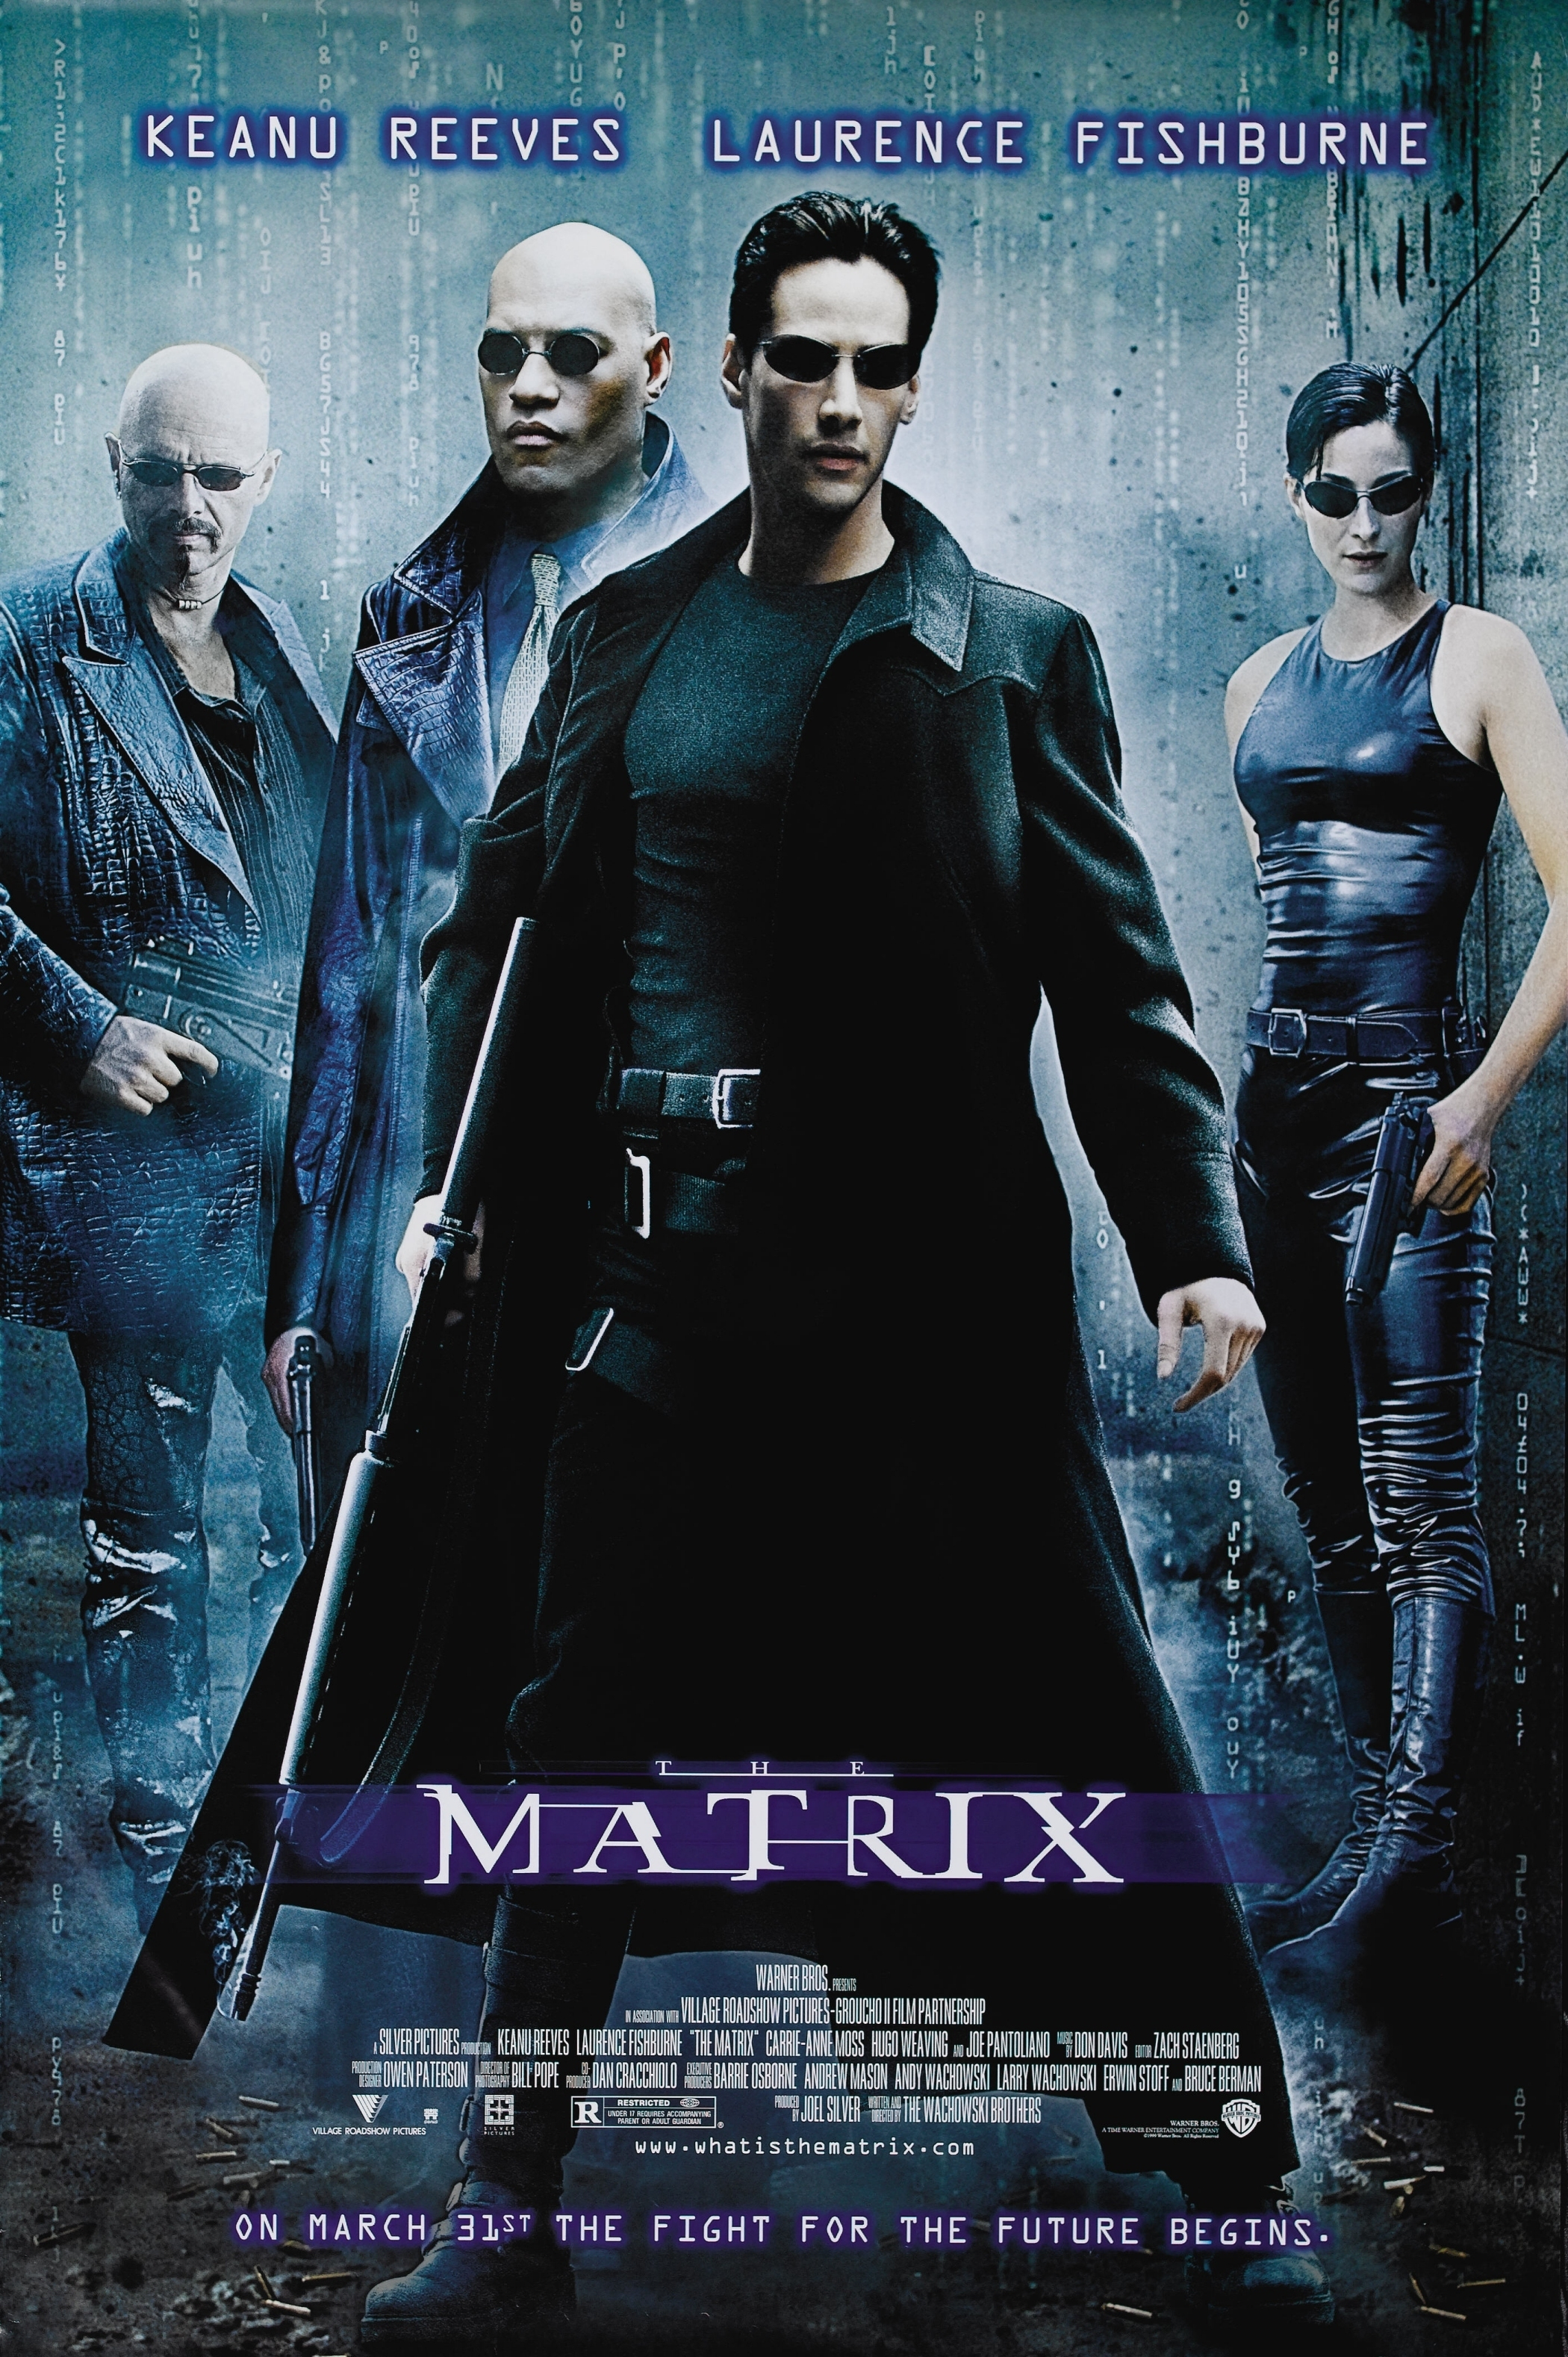 The Matrix (1999) - Directed By: The WachowskisStarring: Keanu Reeves, Laurence Fishburne, Carrie-Anne Moss, Hugo Weaving, Joe PantolianoRated: RRun Time: 2h 16mTMM Score: 5 StarsStrengths: Effects, Story, Action SequencesWeakness: Unimpressive Acting